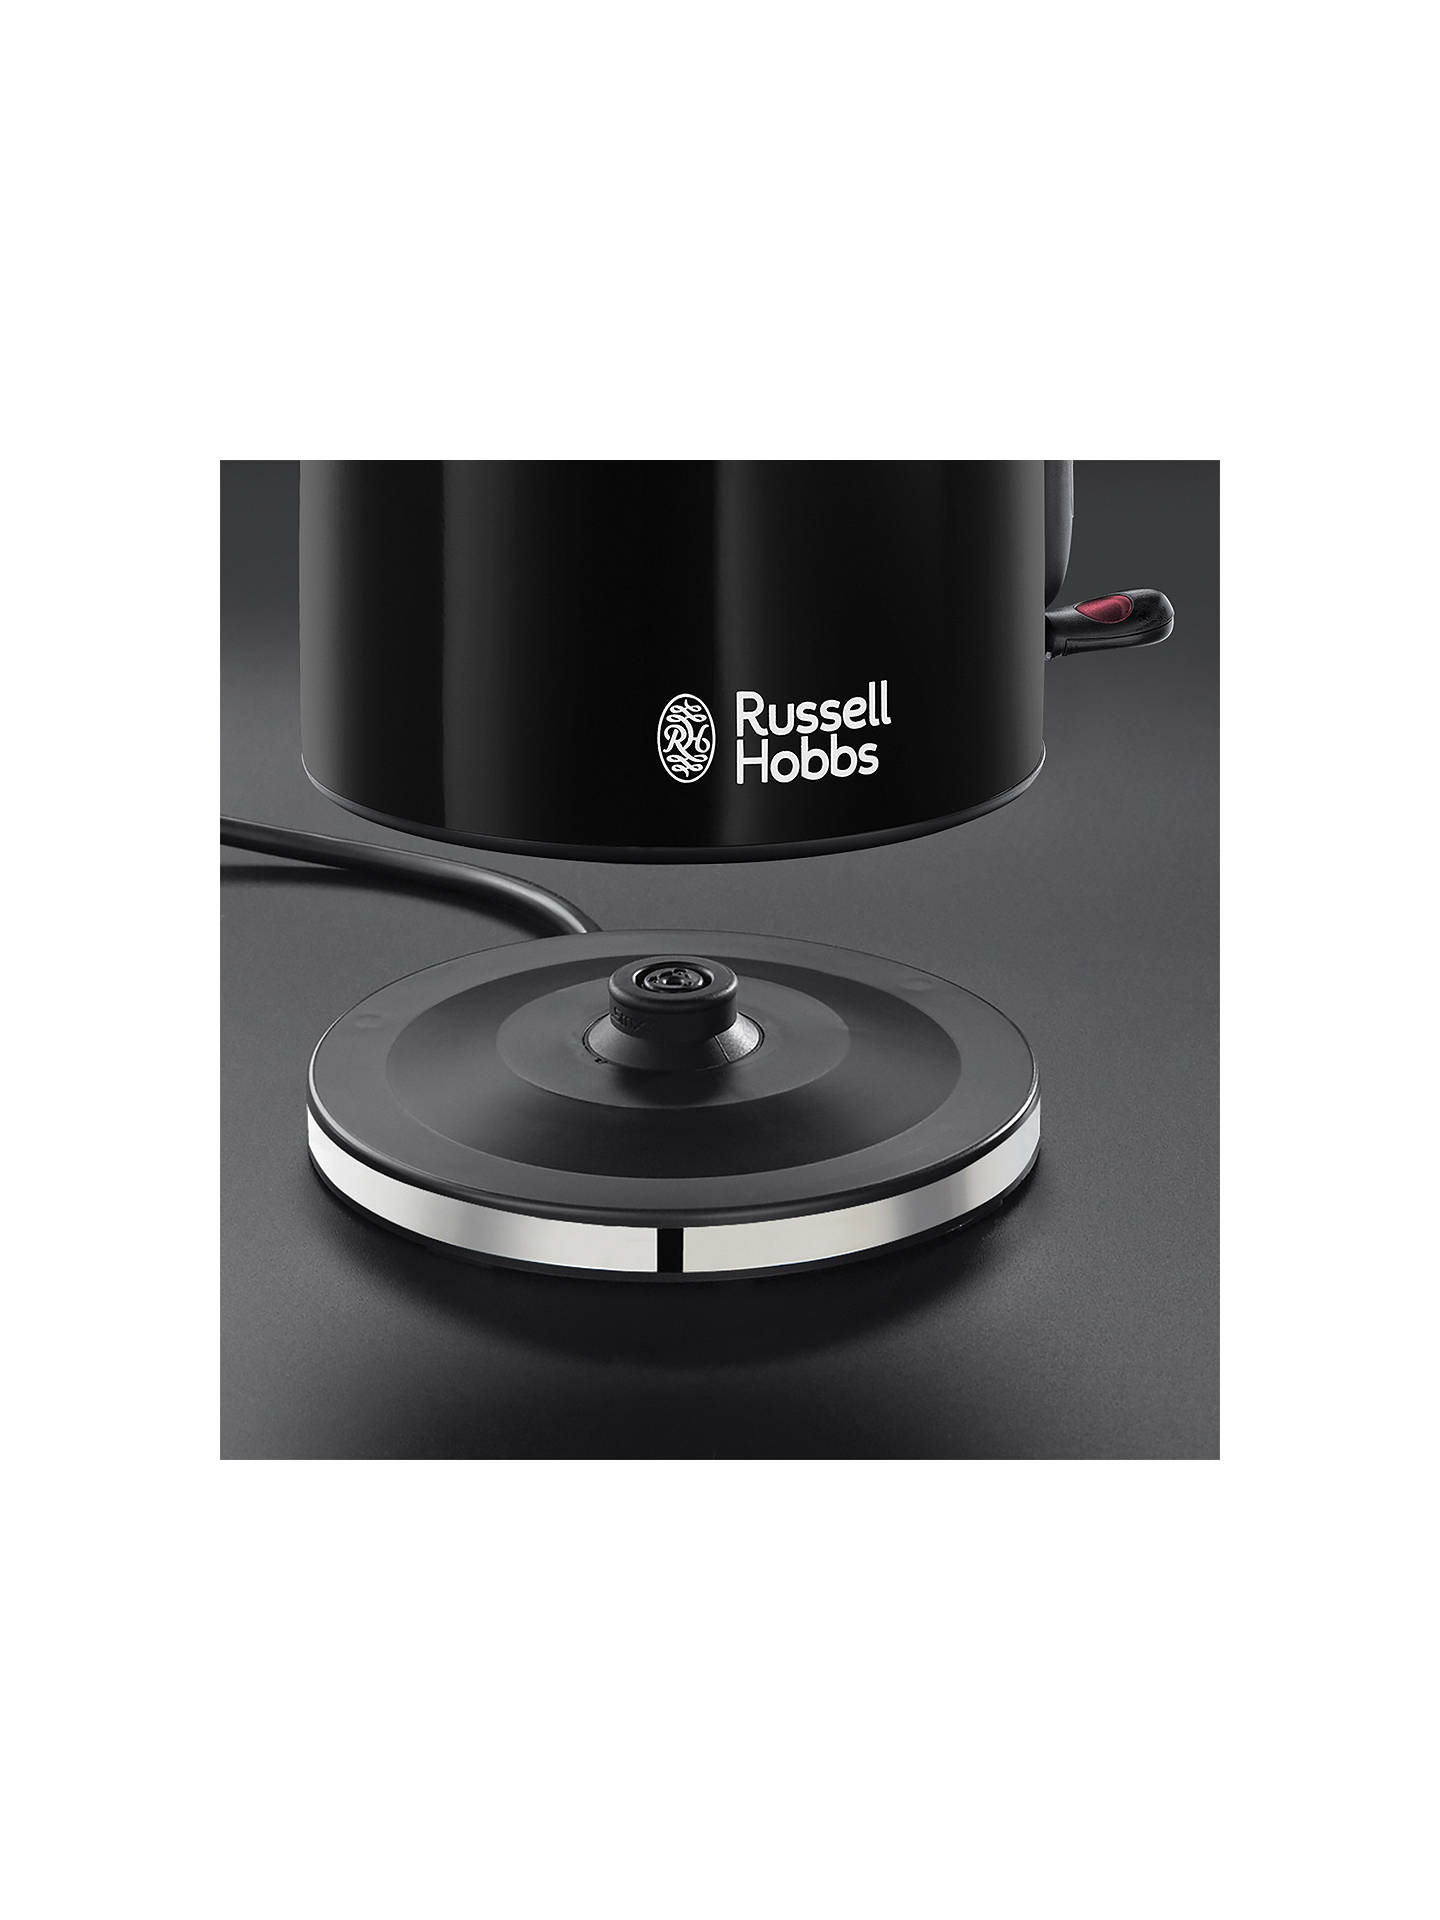 BuyRussell Hobbs Colours Plus Kettle, Black Online at johnlewis.com